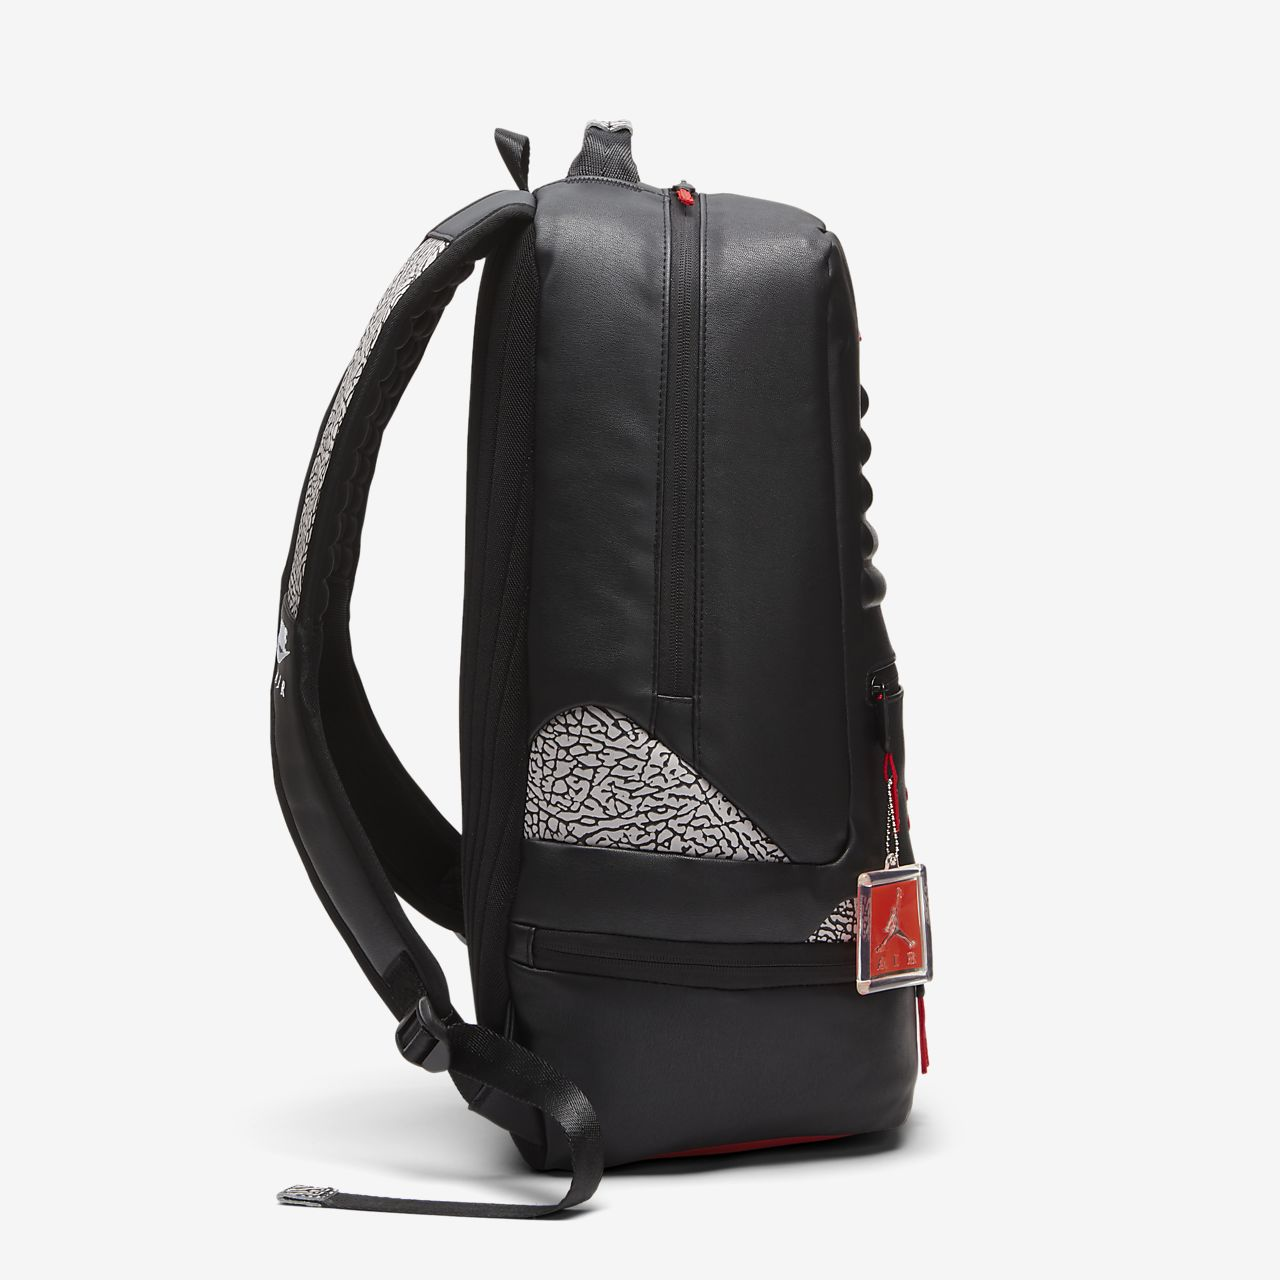 4ba8383d1d6b14 Low Resolution Jordan AJ3 Backpack Jordan AJ3 Backpack